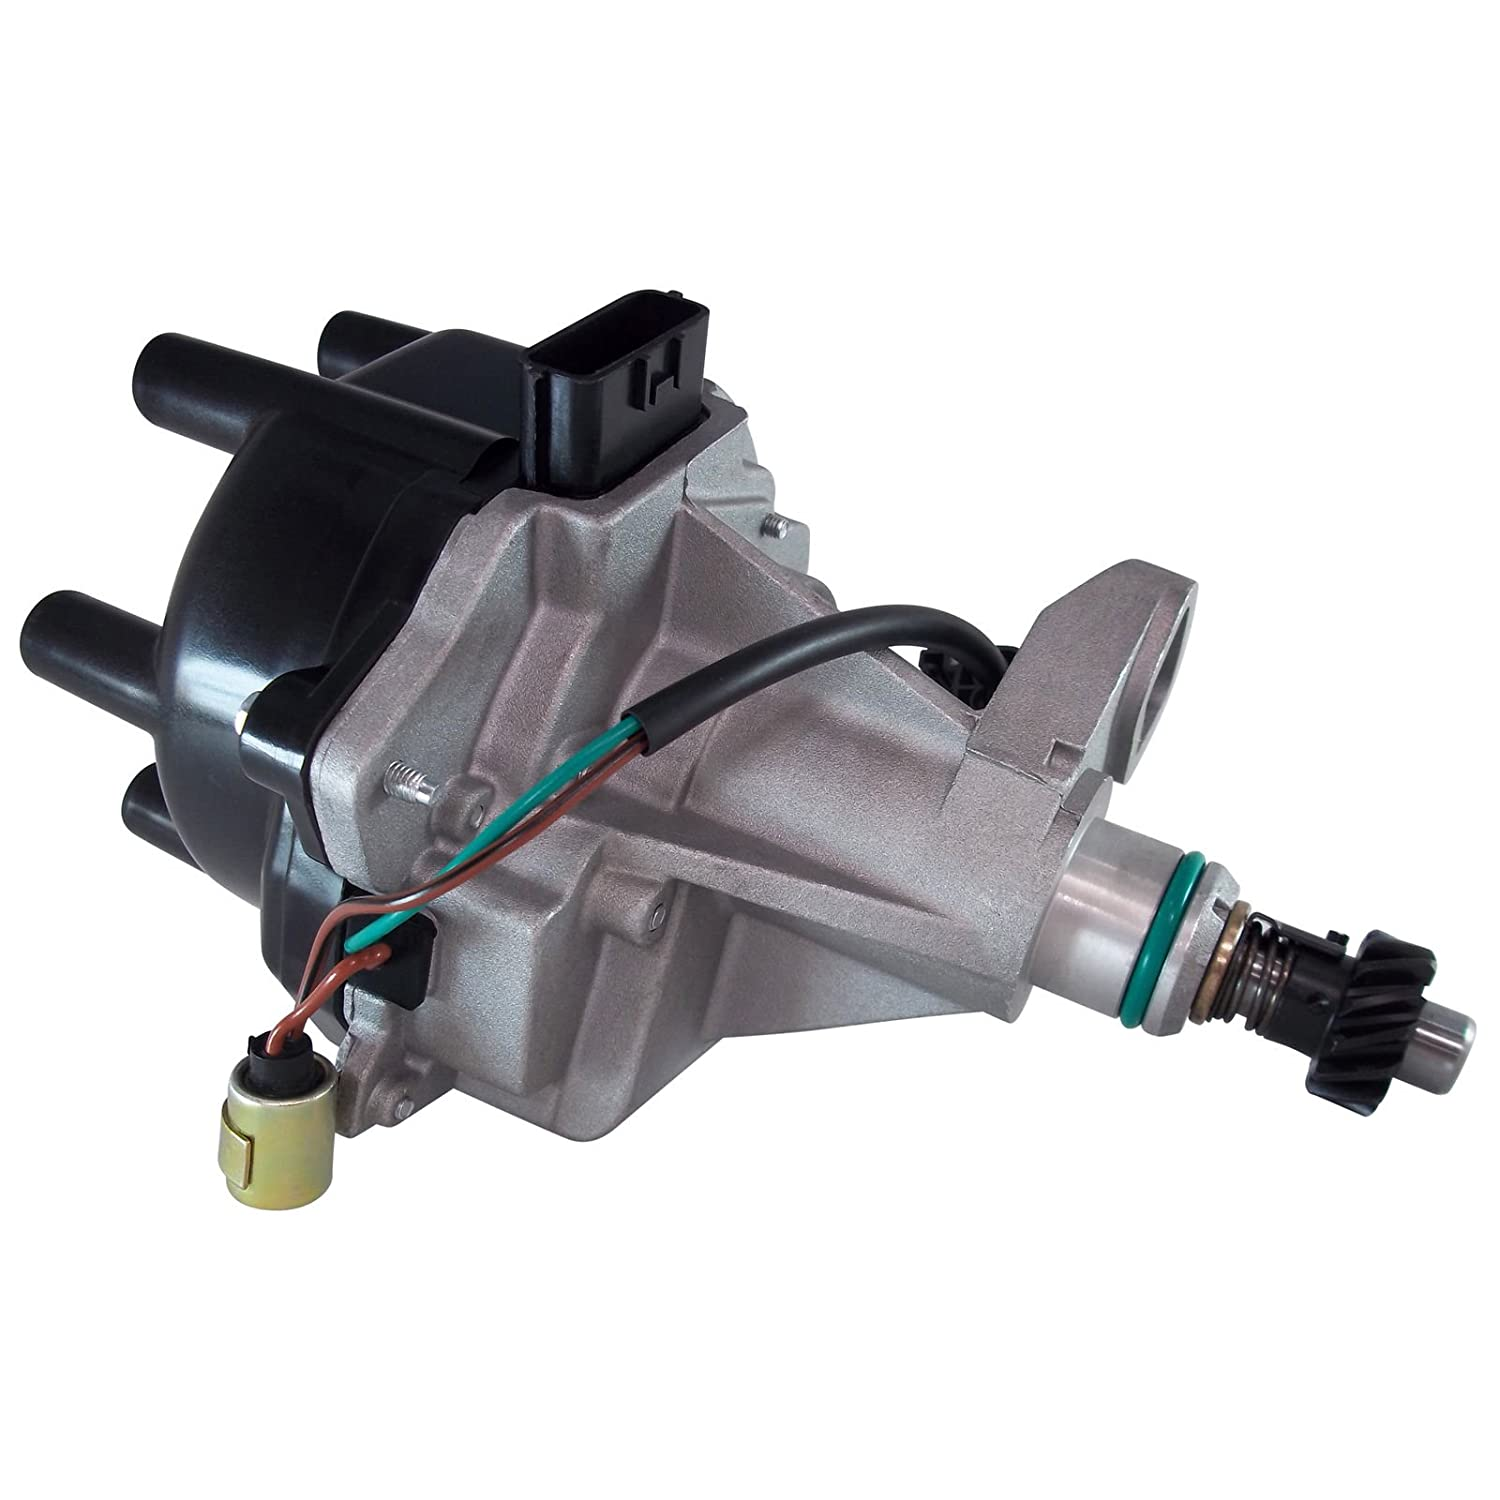 22100-1W601 Ignition Distributor for Pathfinder Frontier Xterra Quest 3.3L fits 221001W601